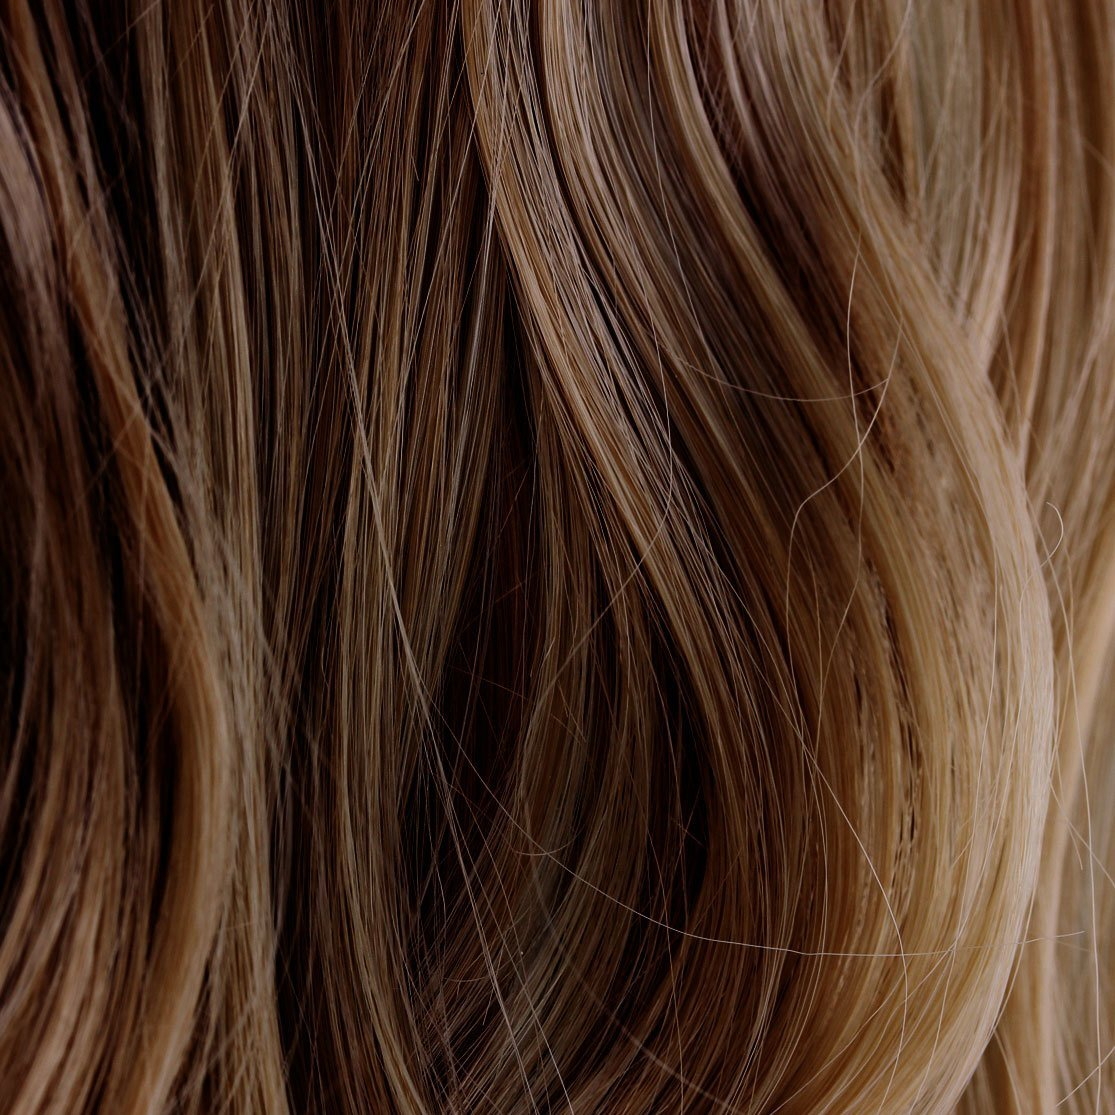 The Best Light Brown Henna Hair Dye – Henna Color Lab® – Henna Hair Dye Pictures